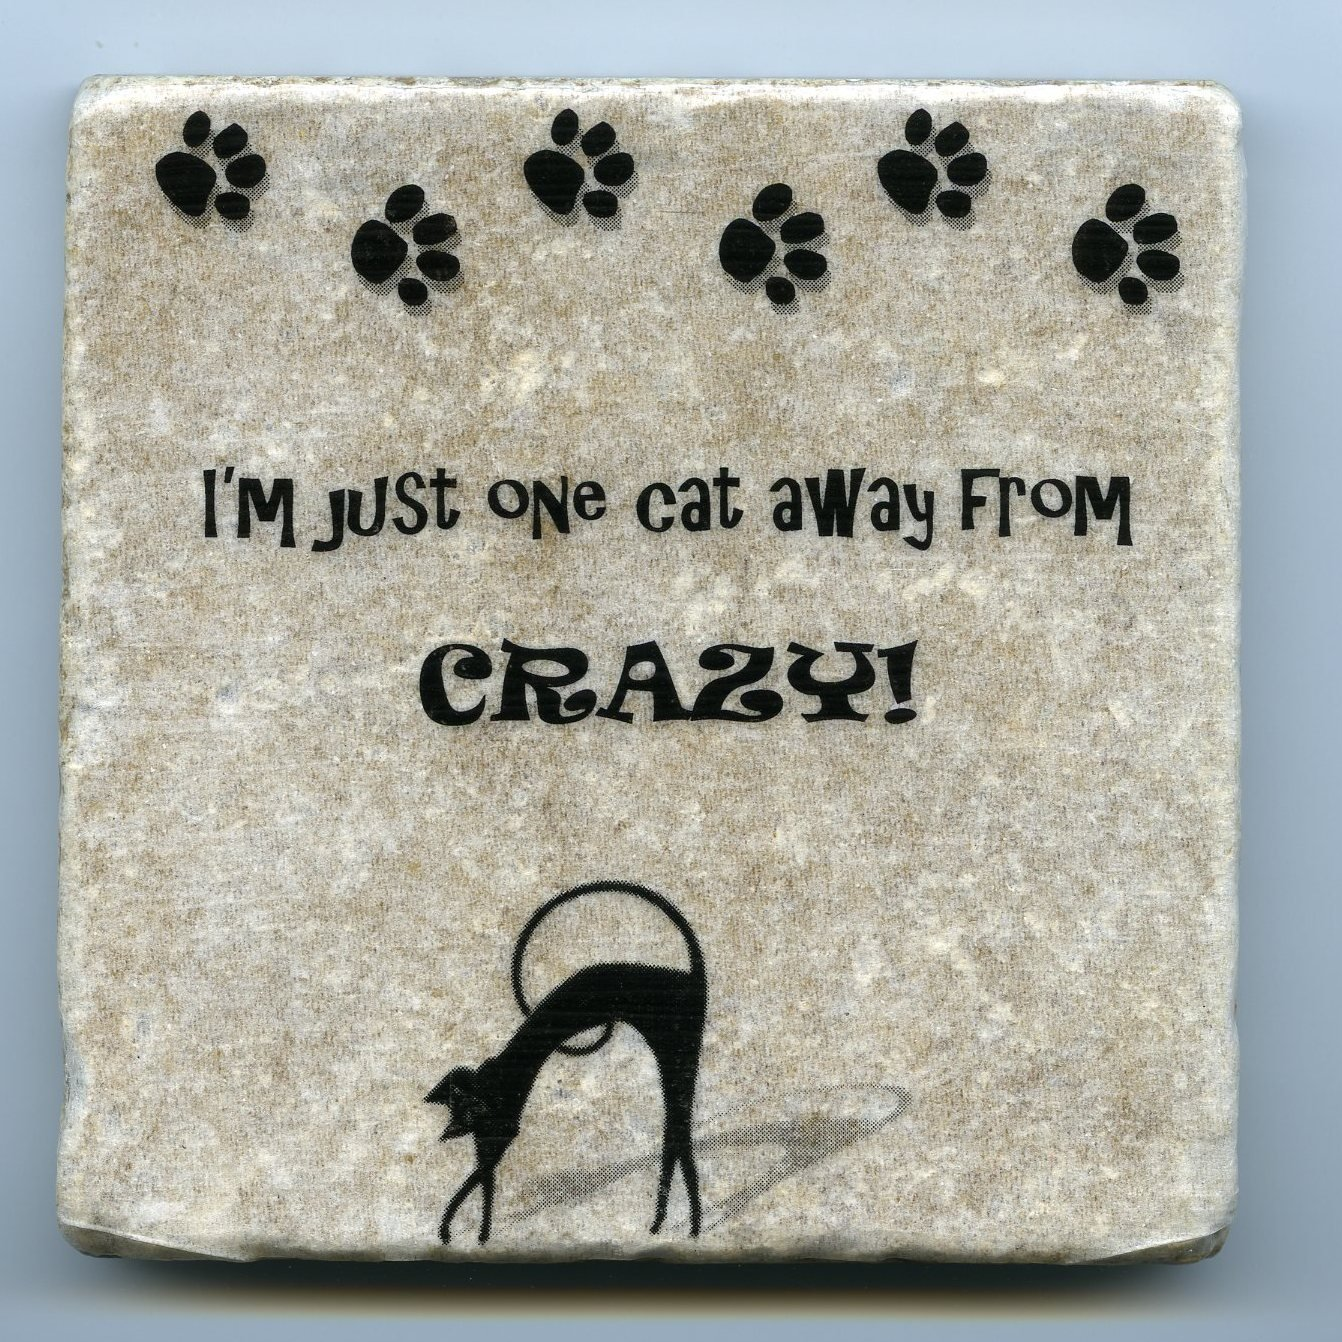 I'm Just One Cat Away From Crazy Tumbled Tile Natural Stone Coaster Wall Art